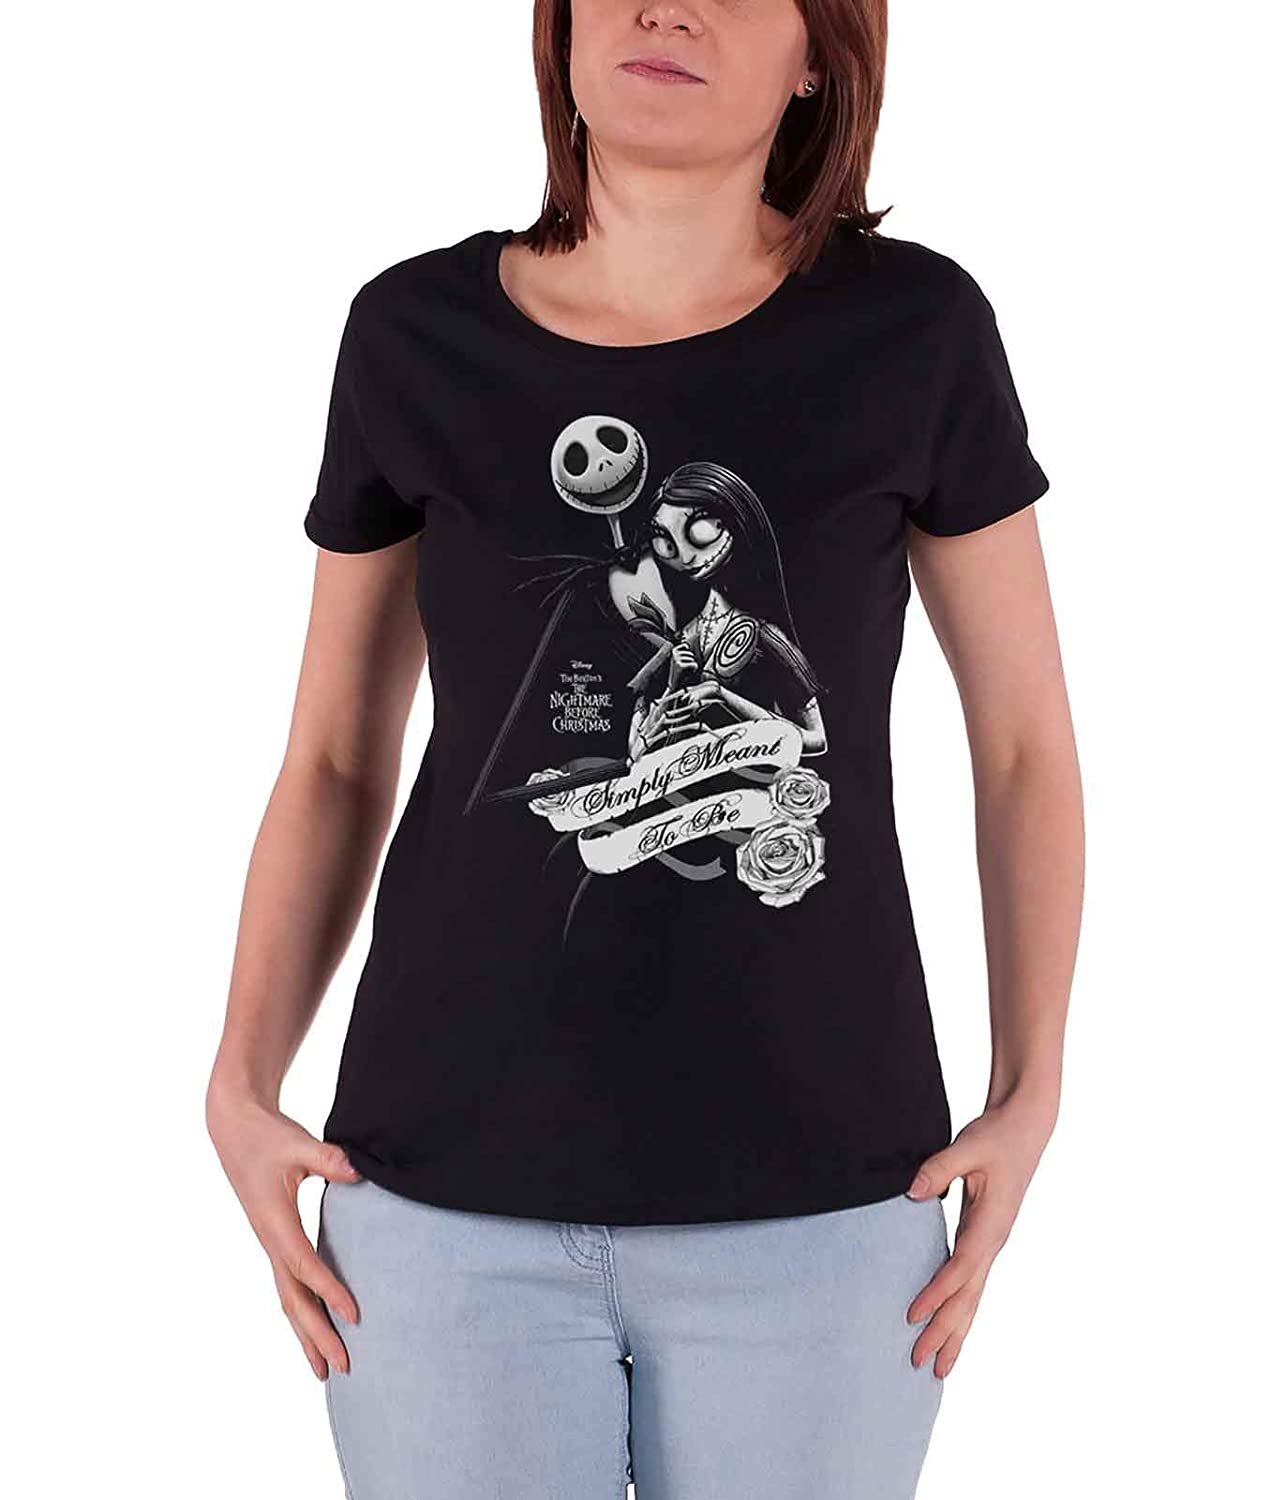 The Nightmare Before Christmas T Shirt Simply Meant To Be Nuovo Ufficiale da